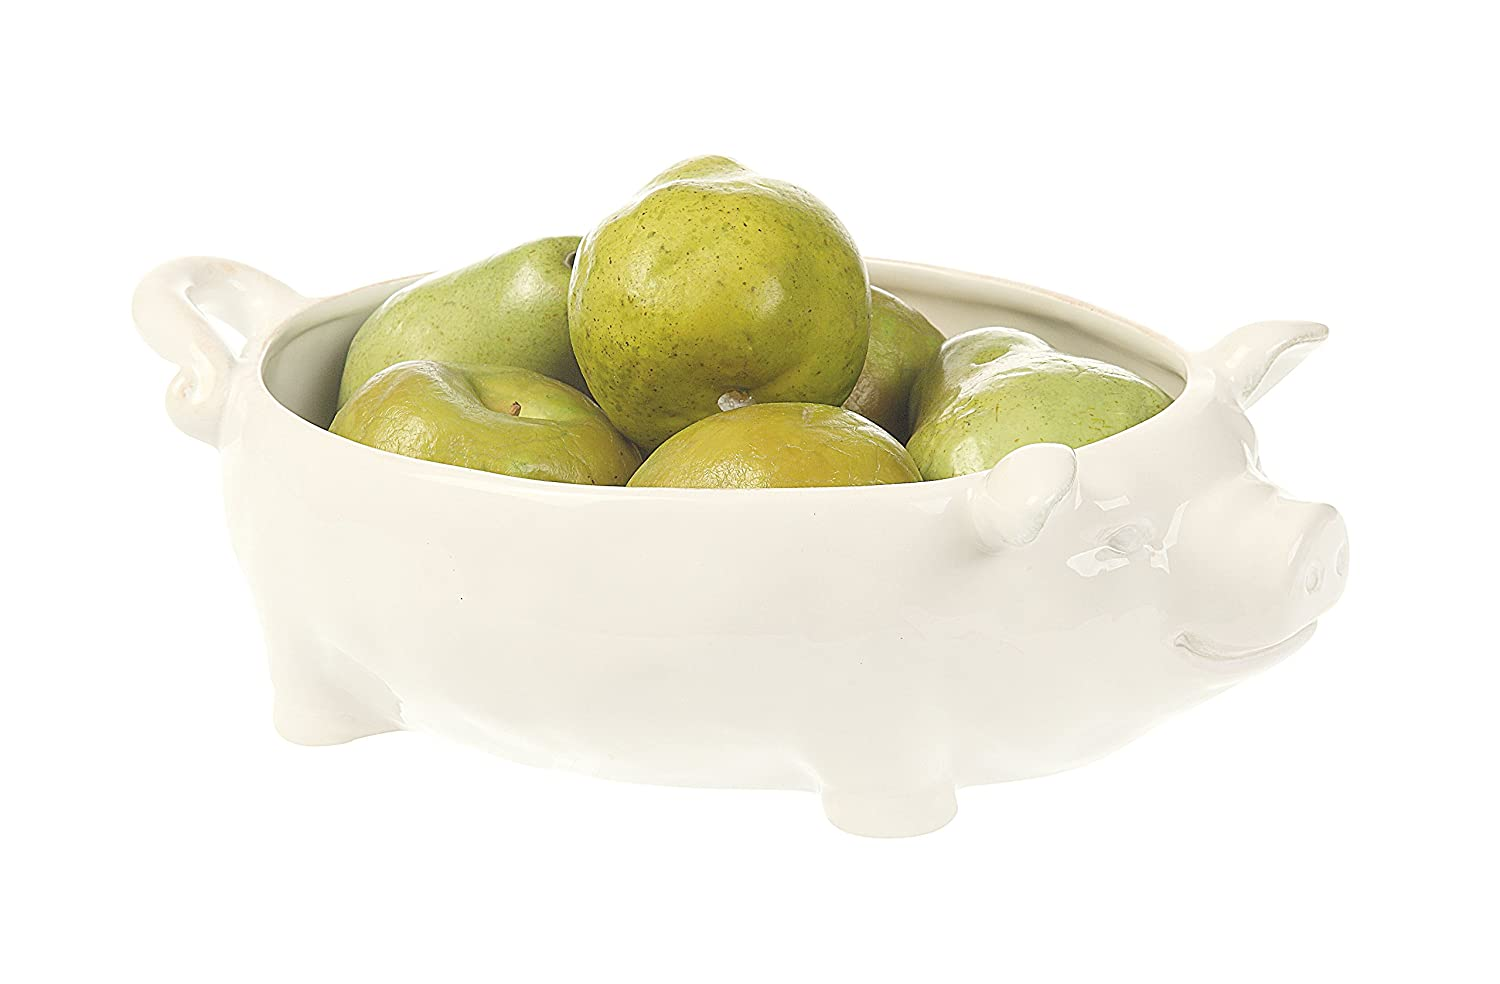 Creative Co-Op Ceramic Pig Bowl, 12.5L x 7.5W x 4H-Inch DA1000